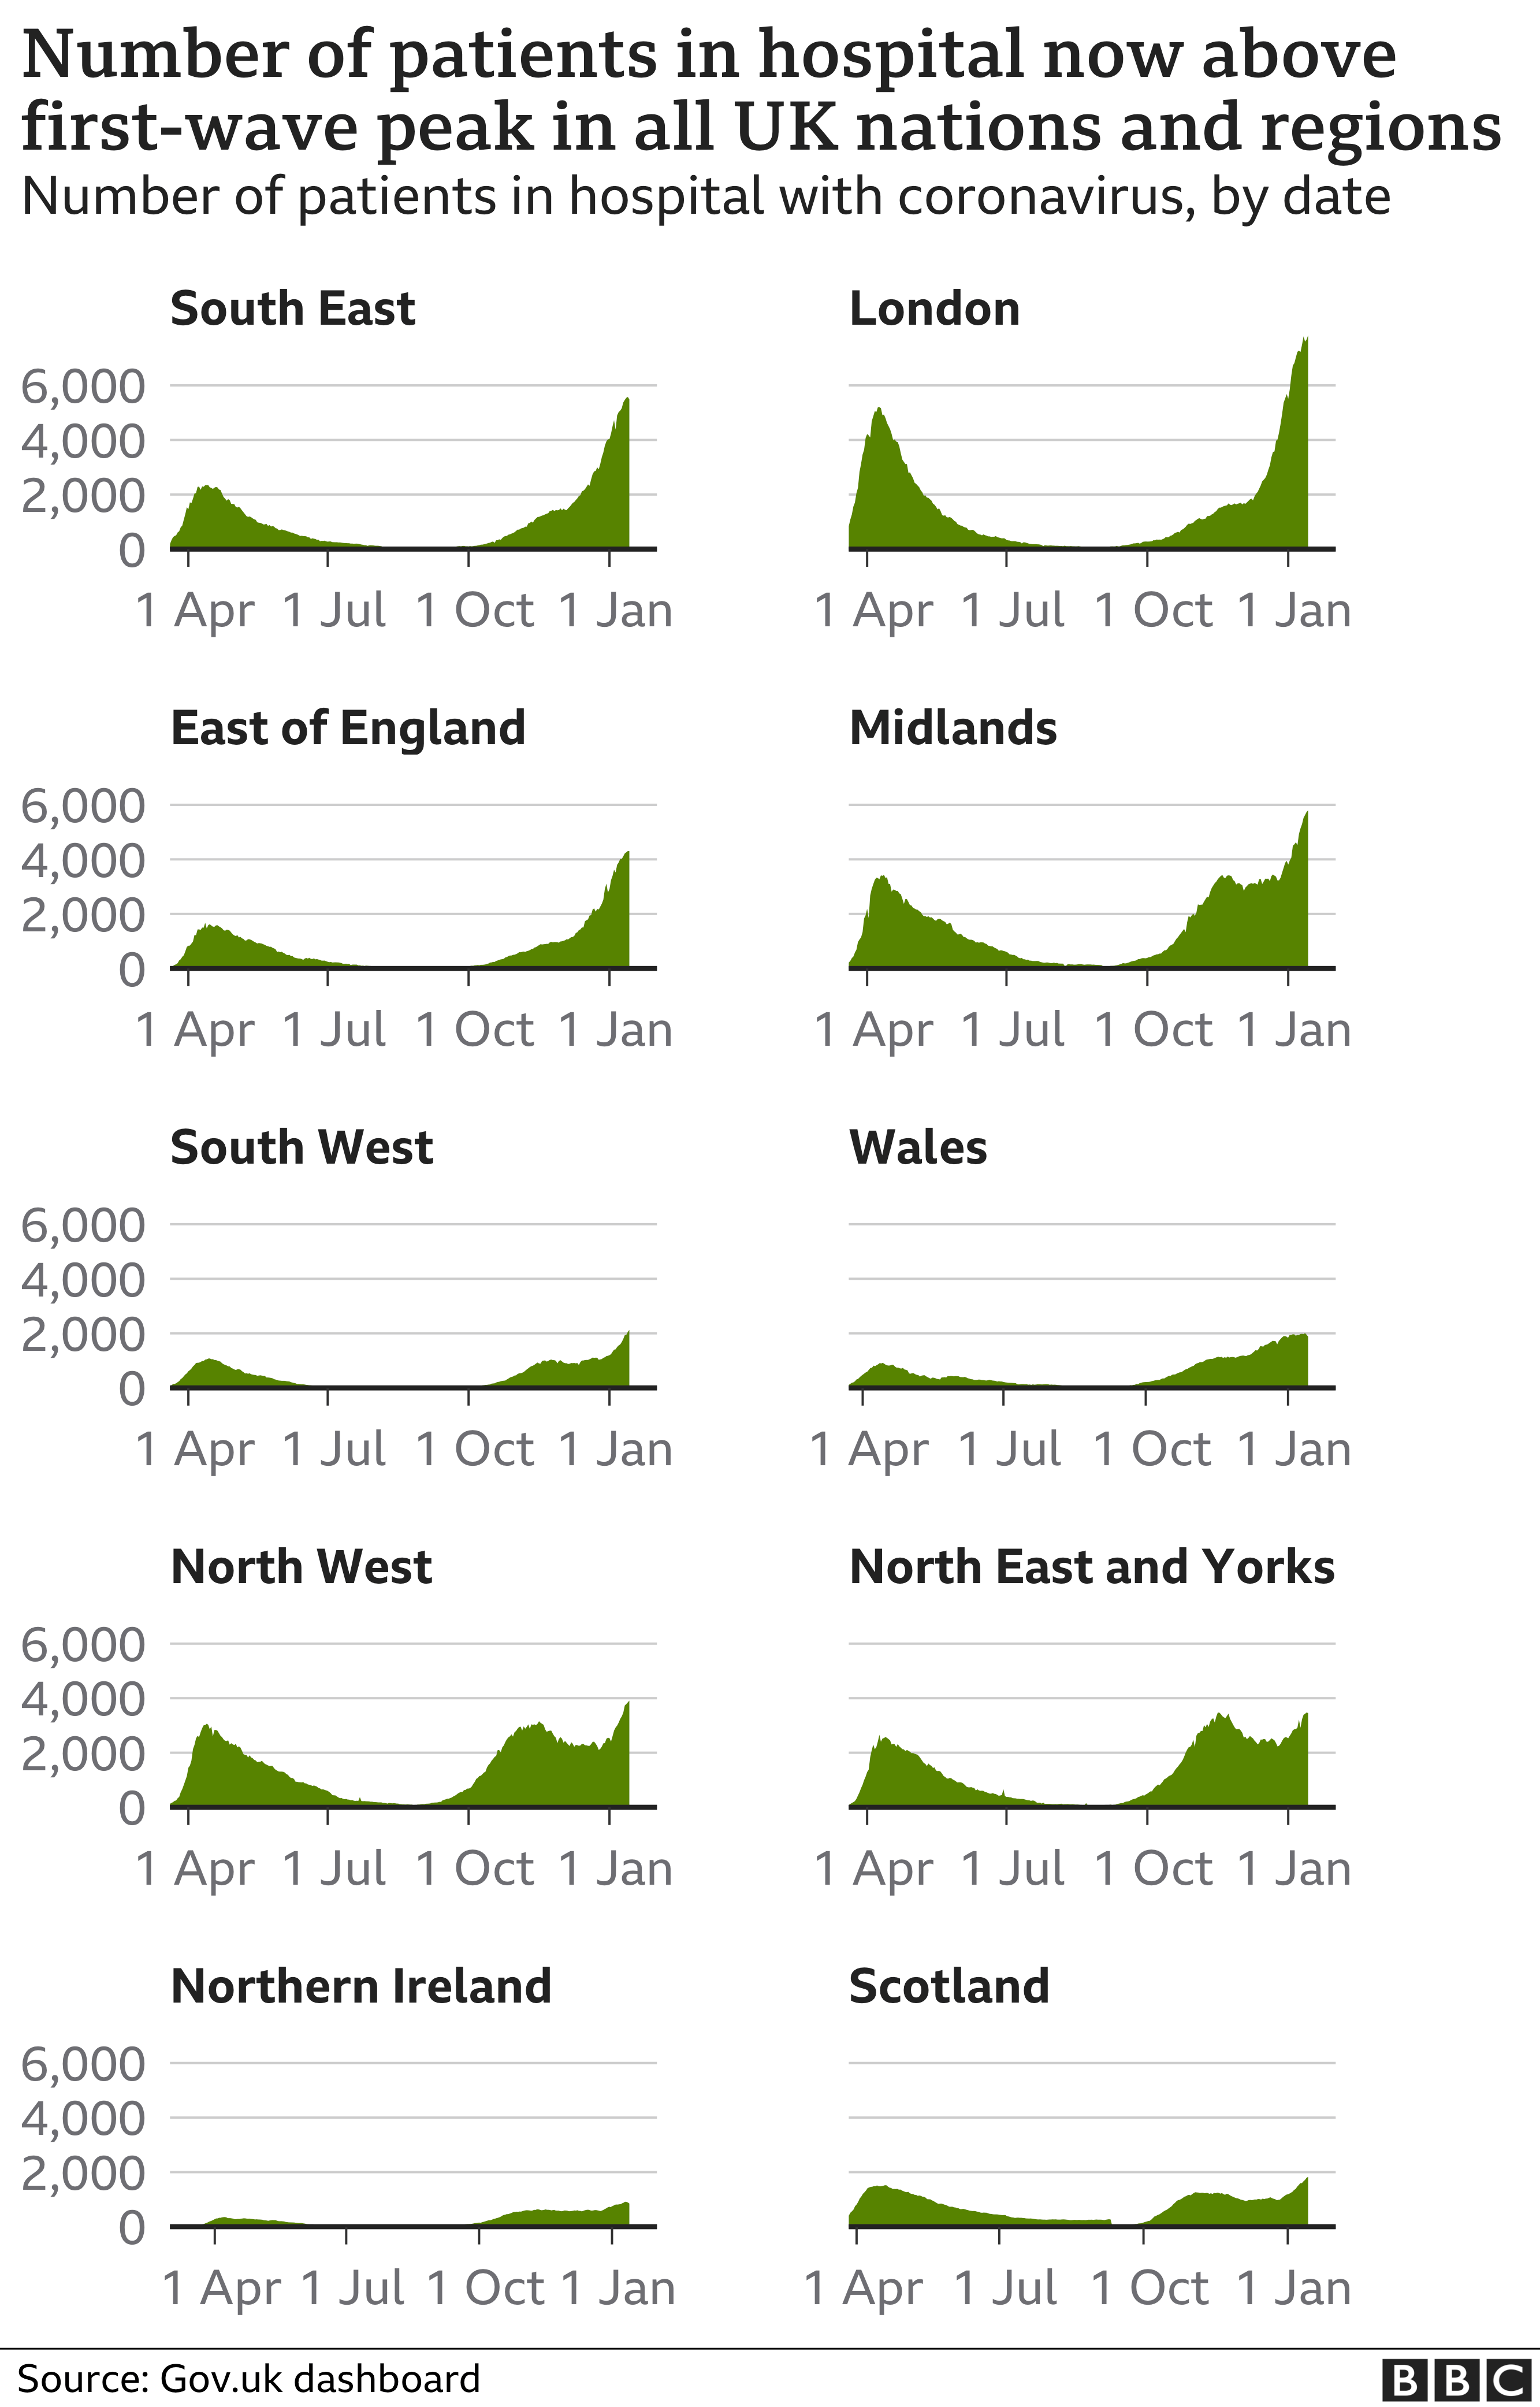 Chart showing hospital admissions in the nations and regions of the UK. Updated 15th Jan.